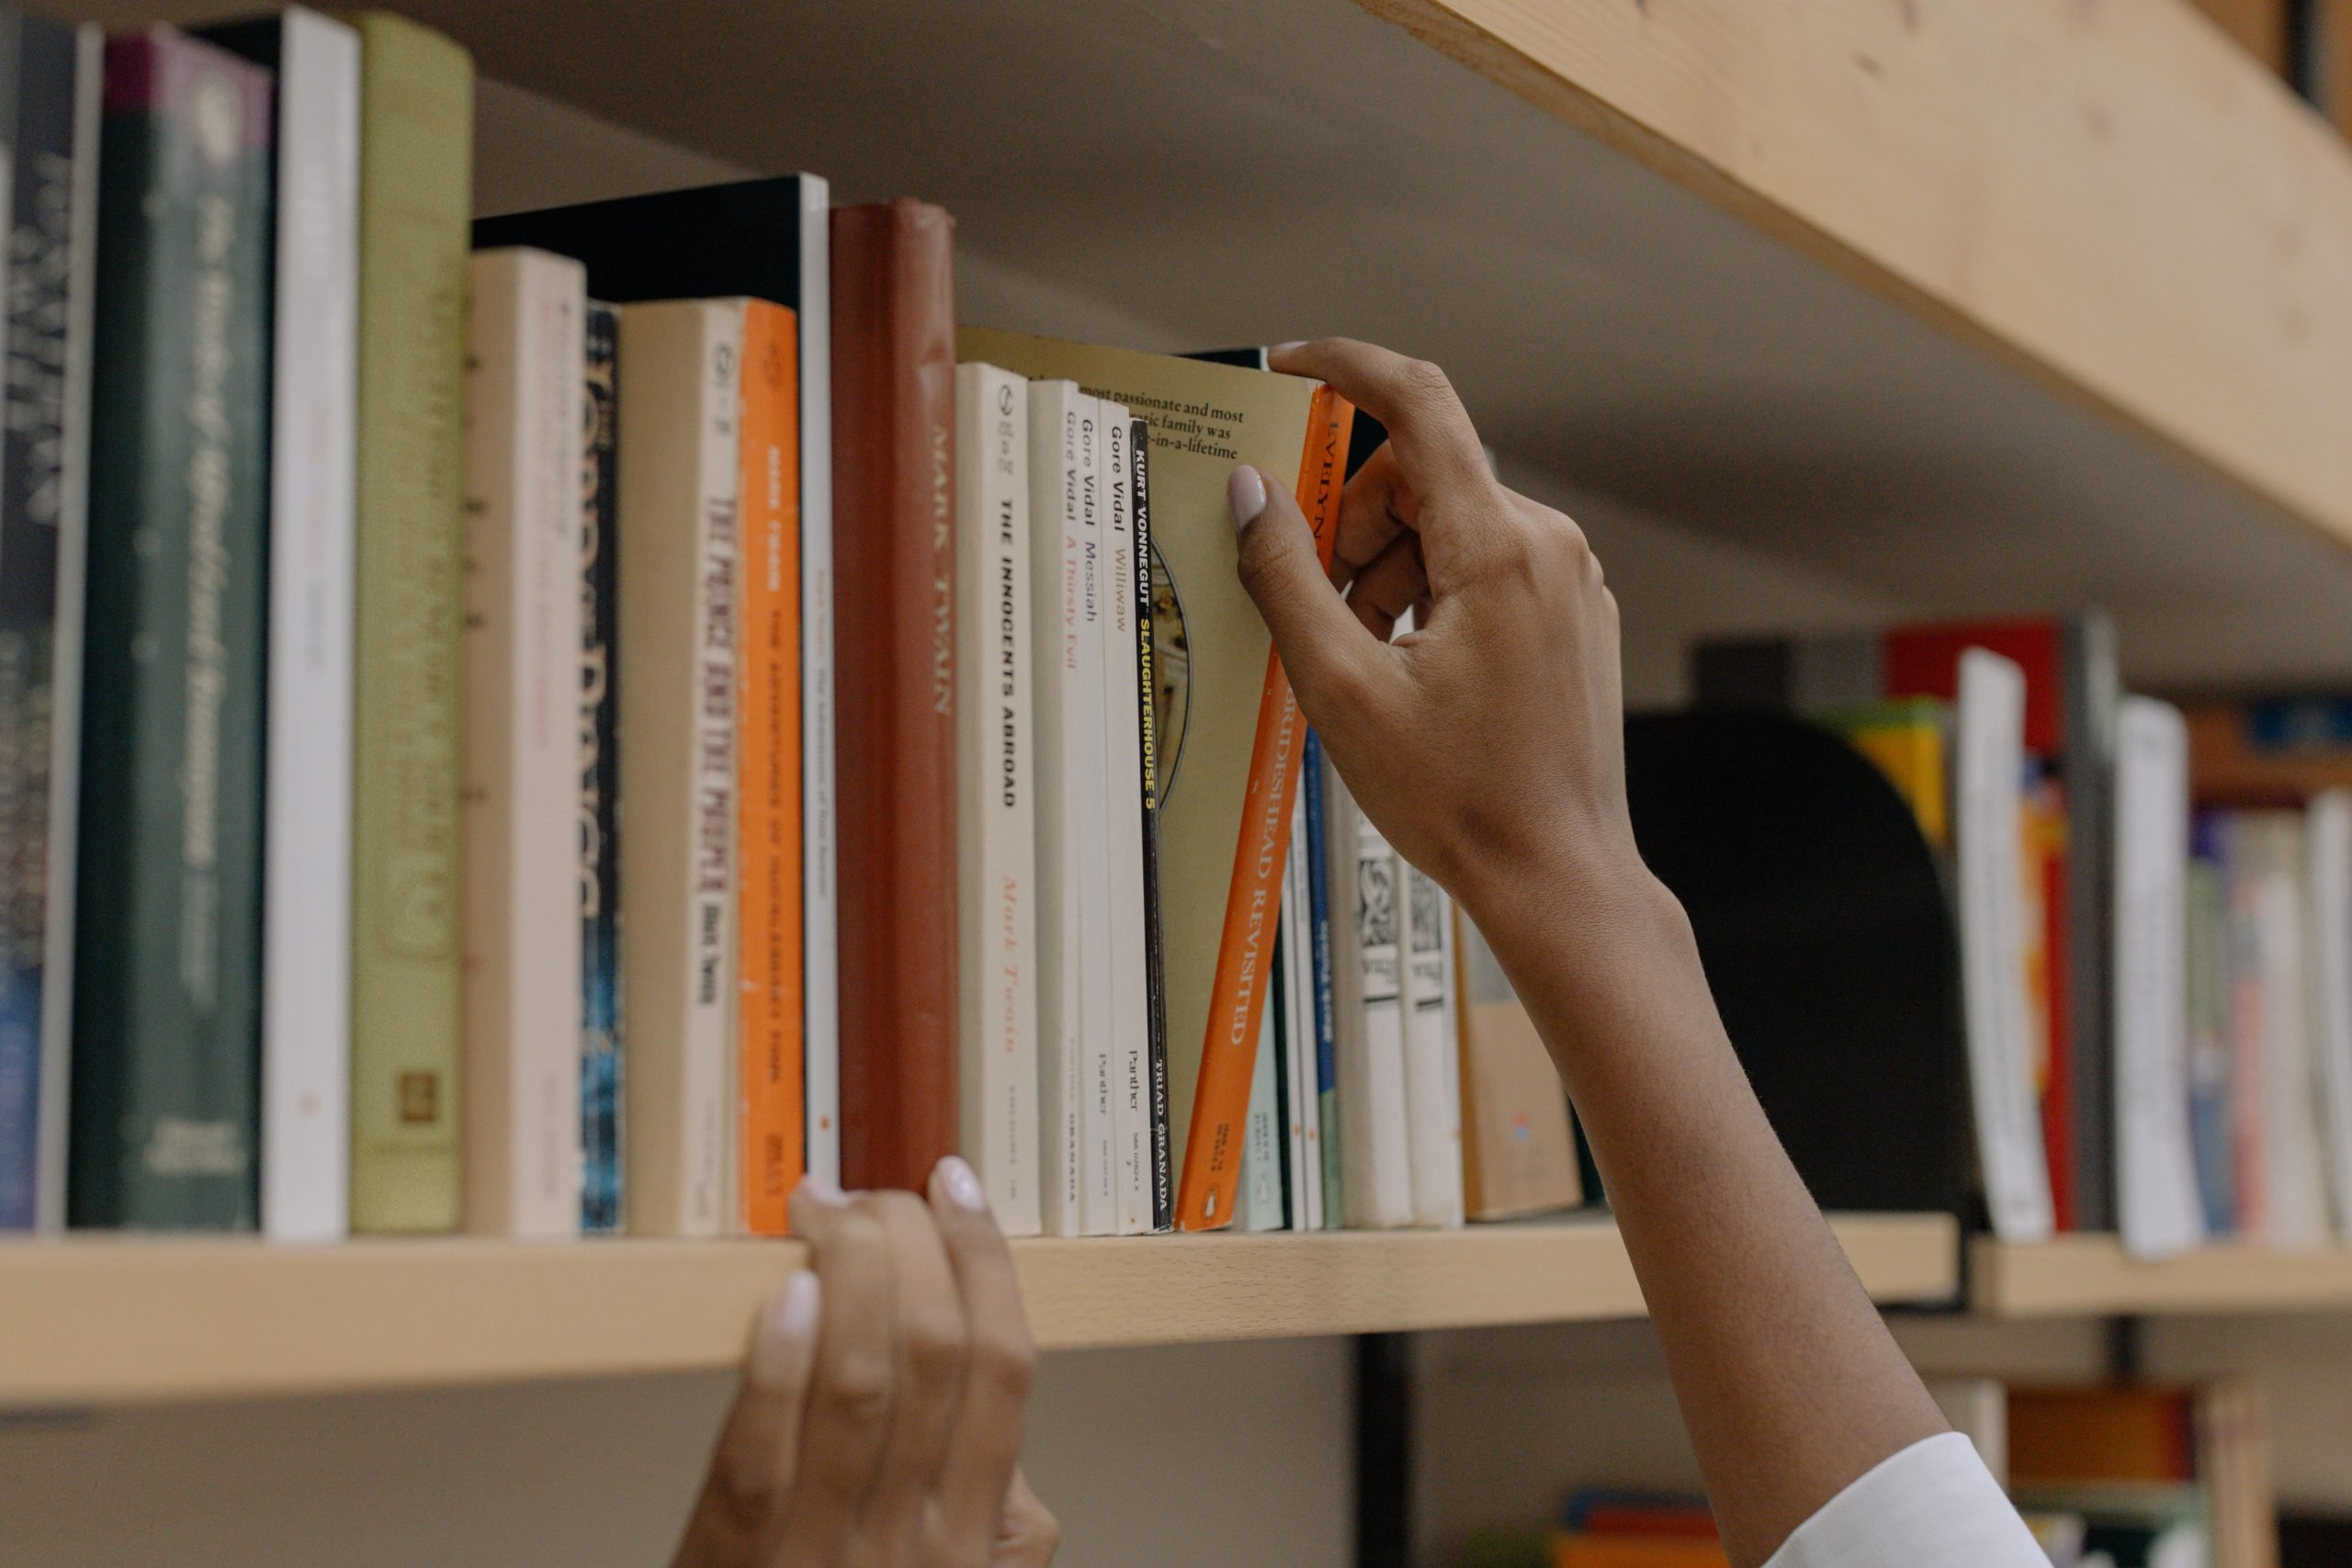 Student selecting a book off of a bookshelf